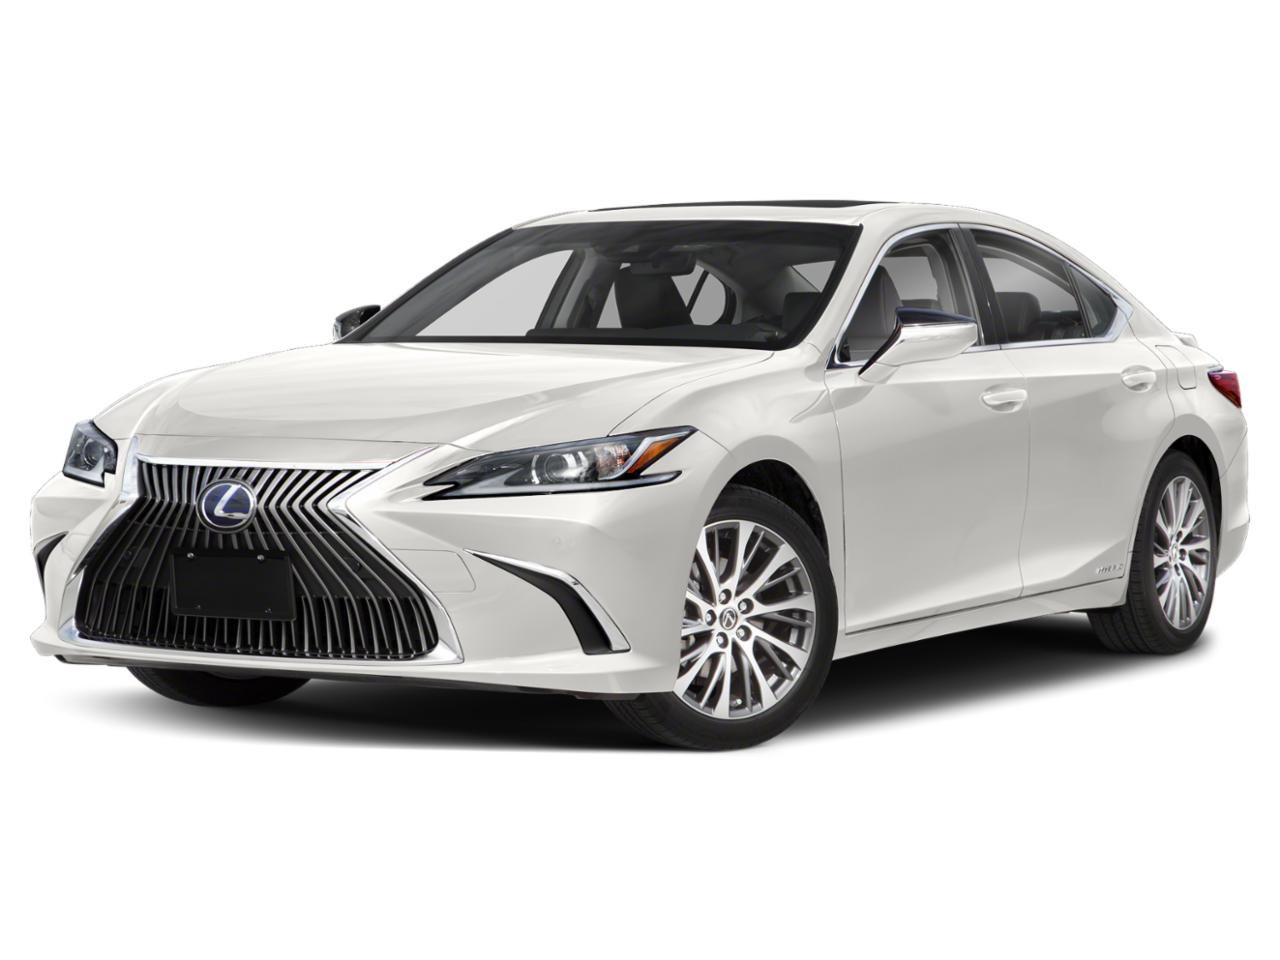 2020 Lexus ES 300h Vehicle Photo in Dallas, TX 75235